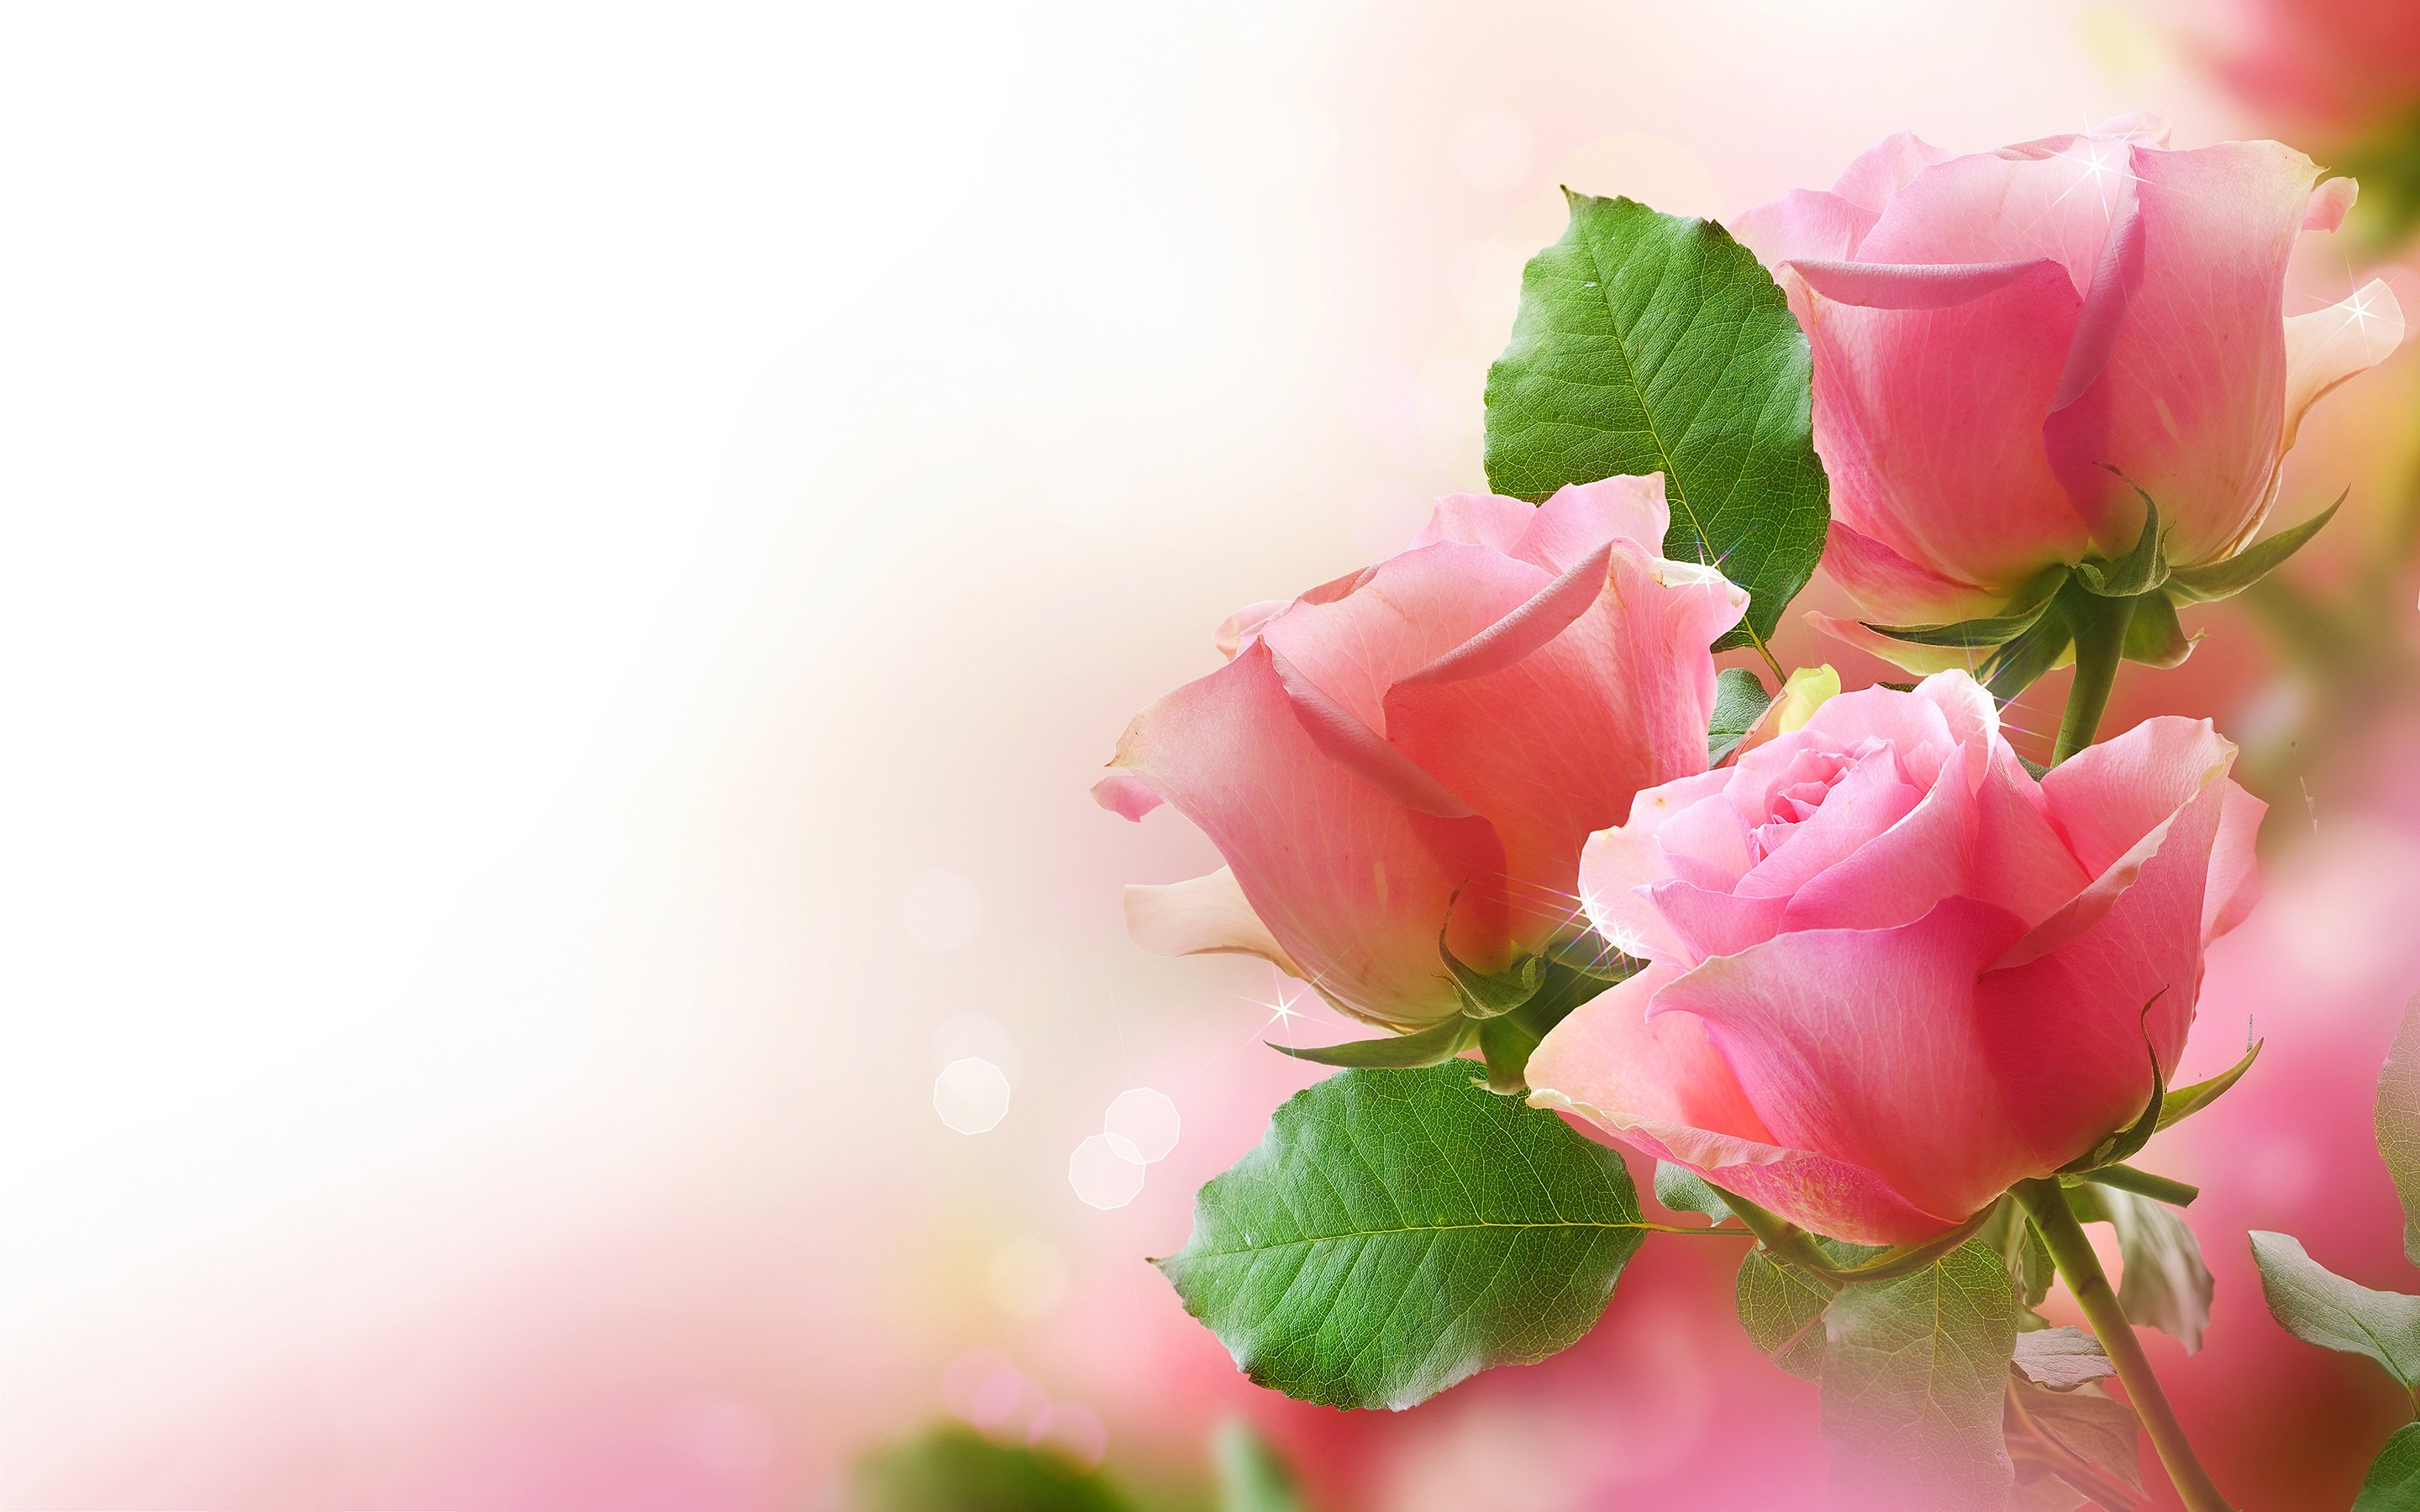 Pretty Pink Roses   Roses Wallpaper 34610943 2880x1800